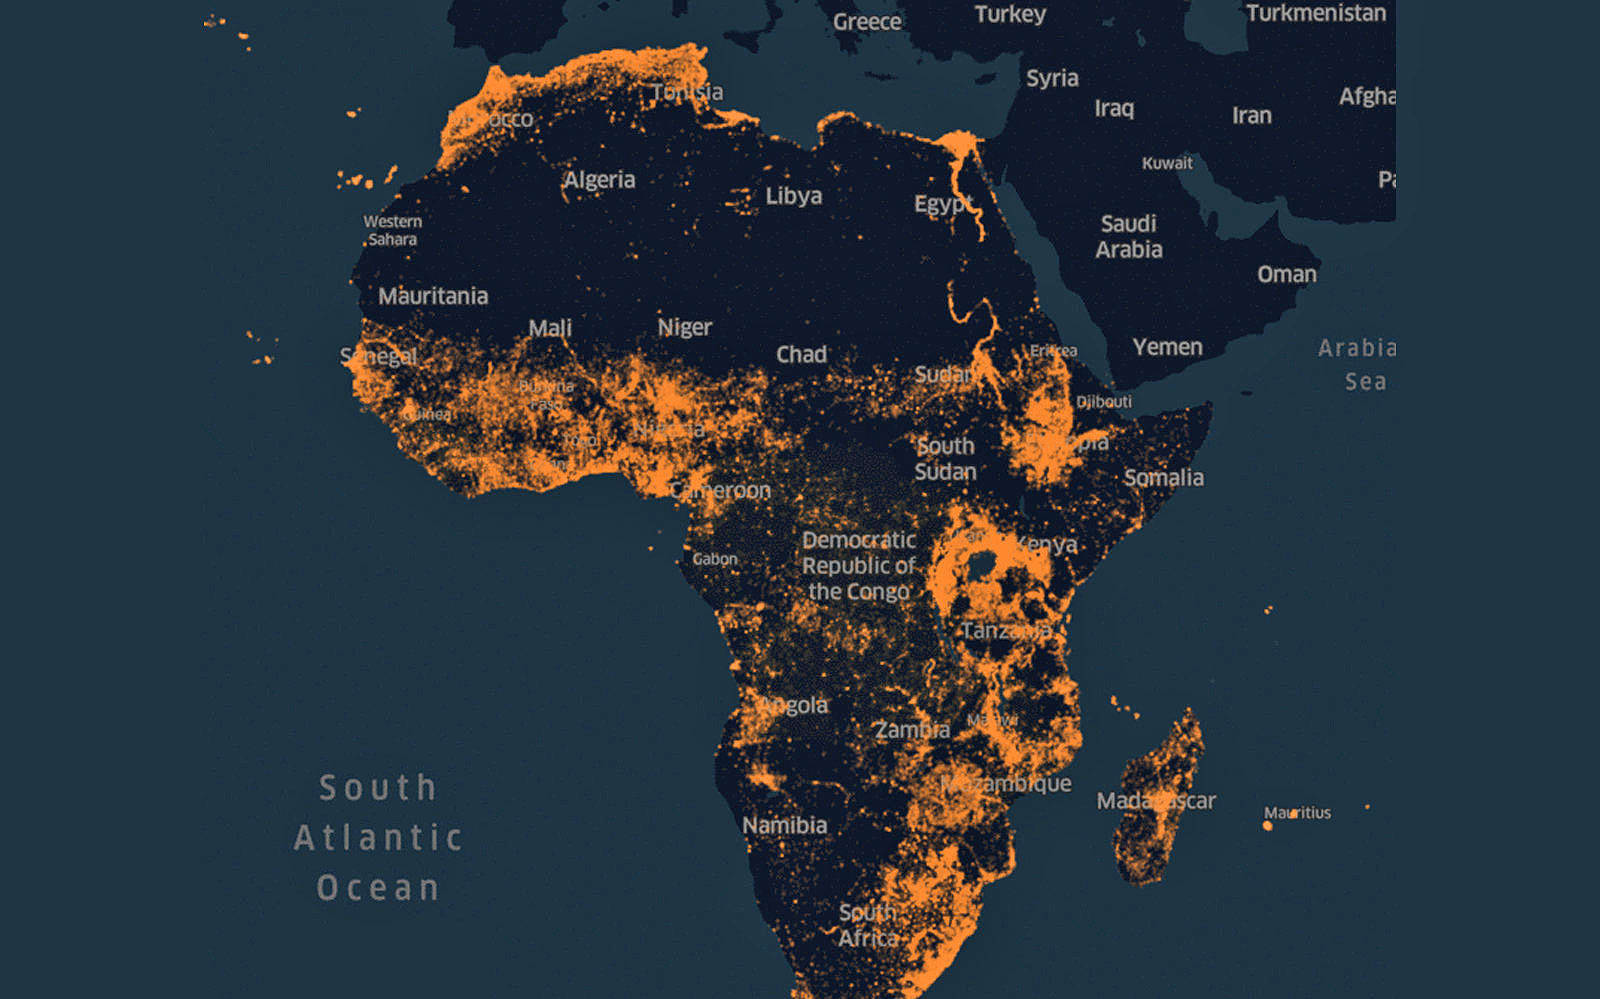 Map Of Africa Map.Facebook Creates An Ai Based Map Of Africa To Help With Crisis Relief